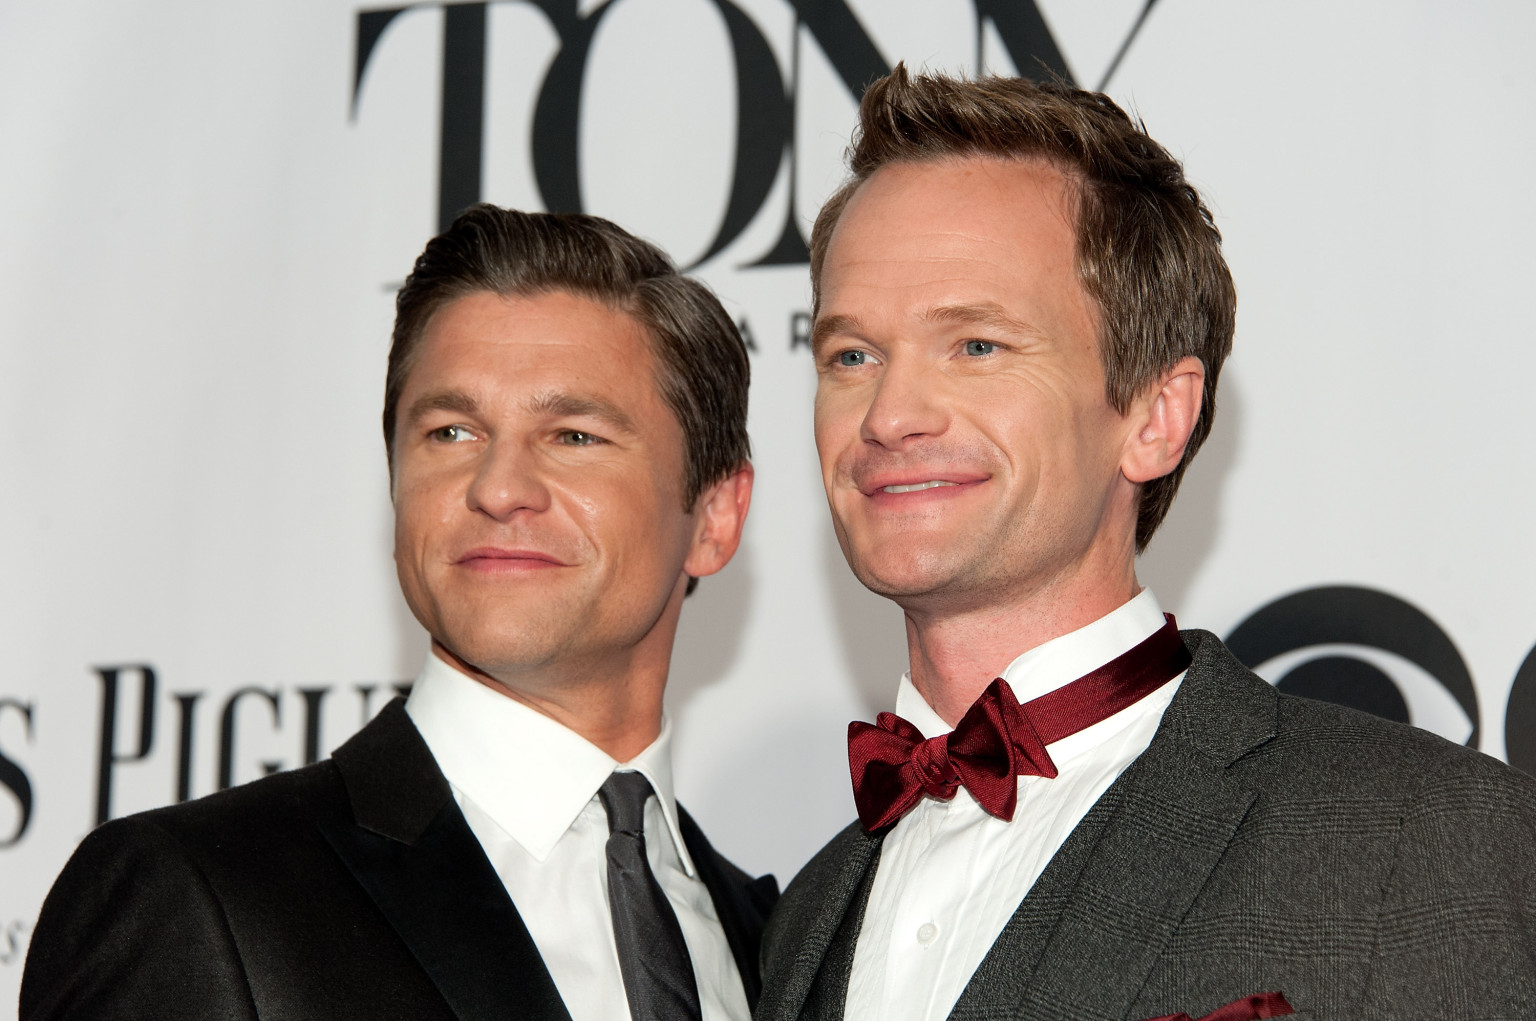 Neil Patrick Harris, David Burtka Will Get Married: 'It